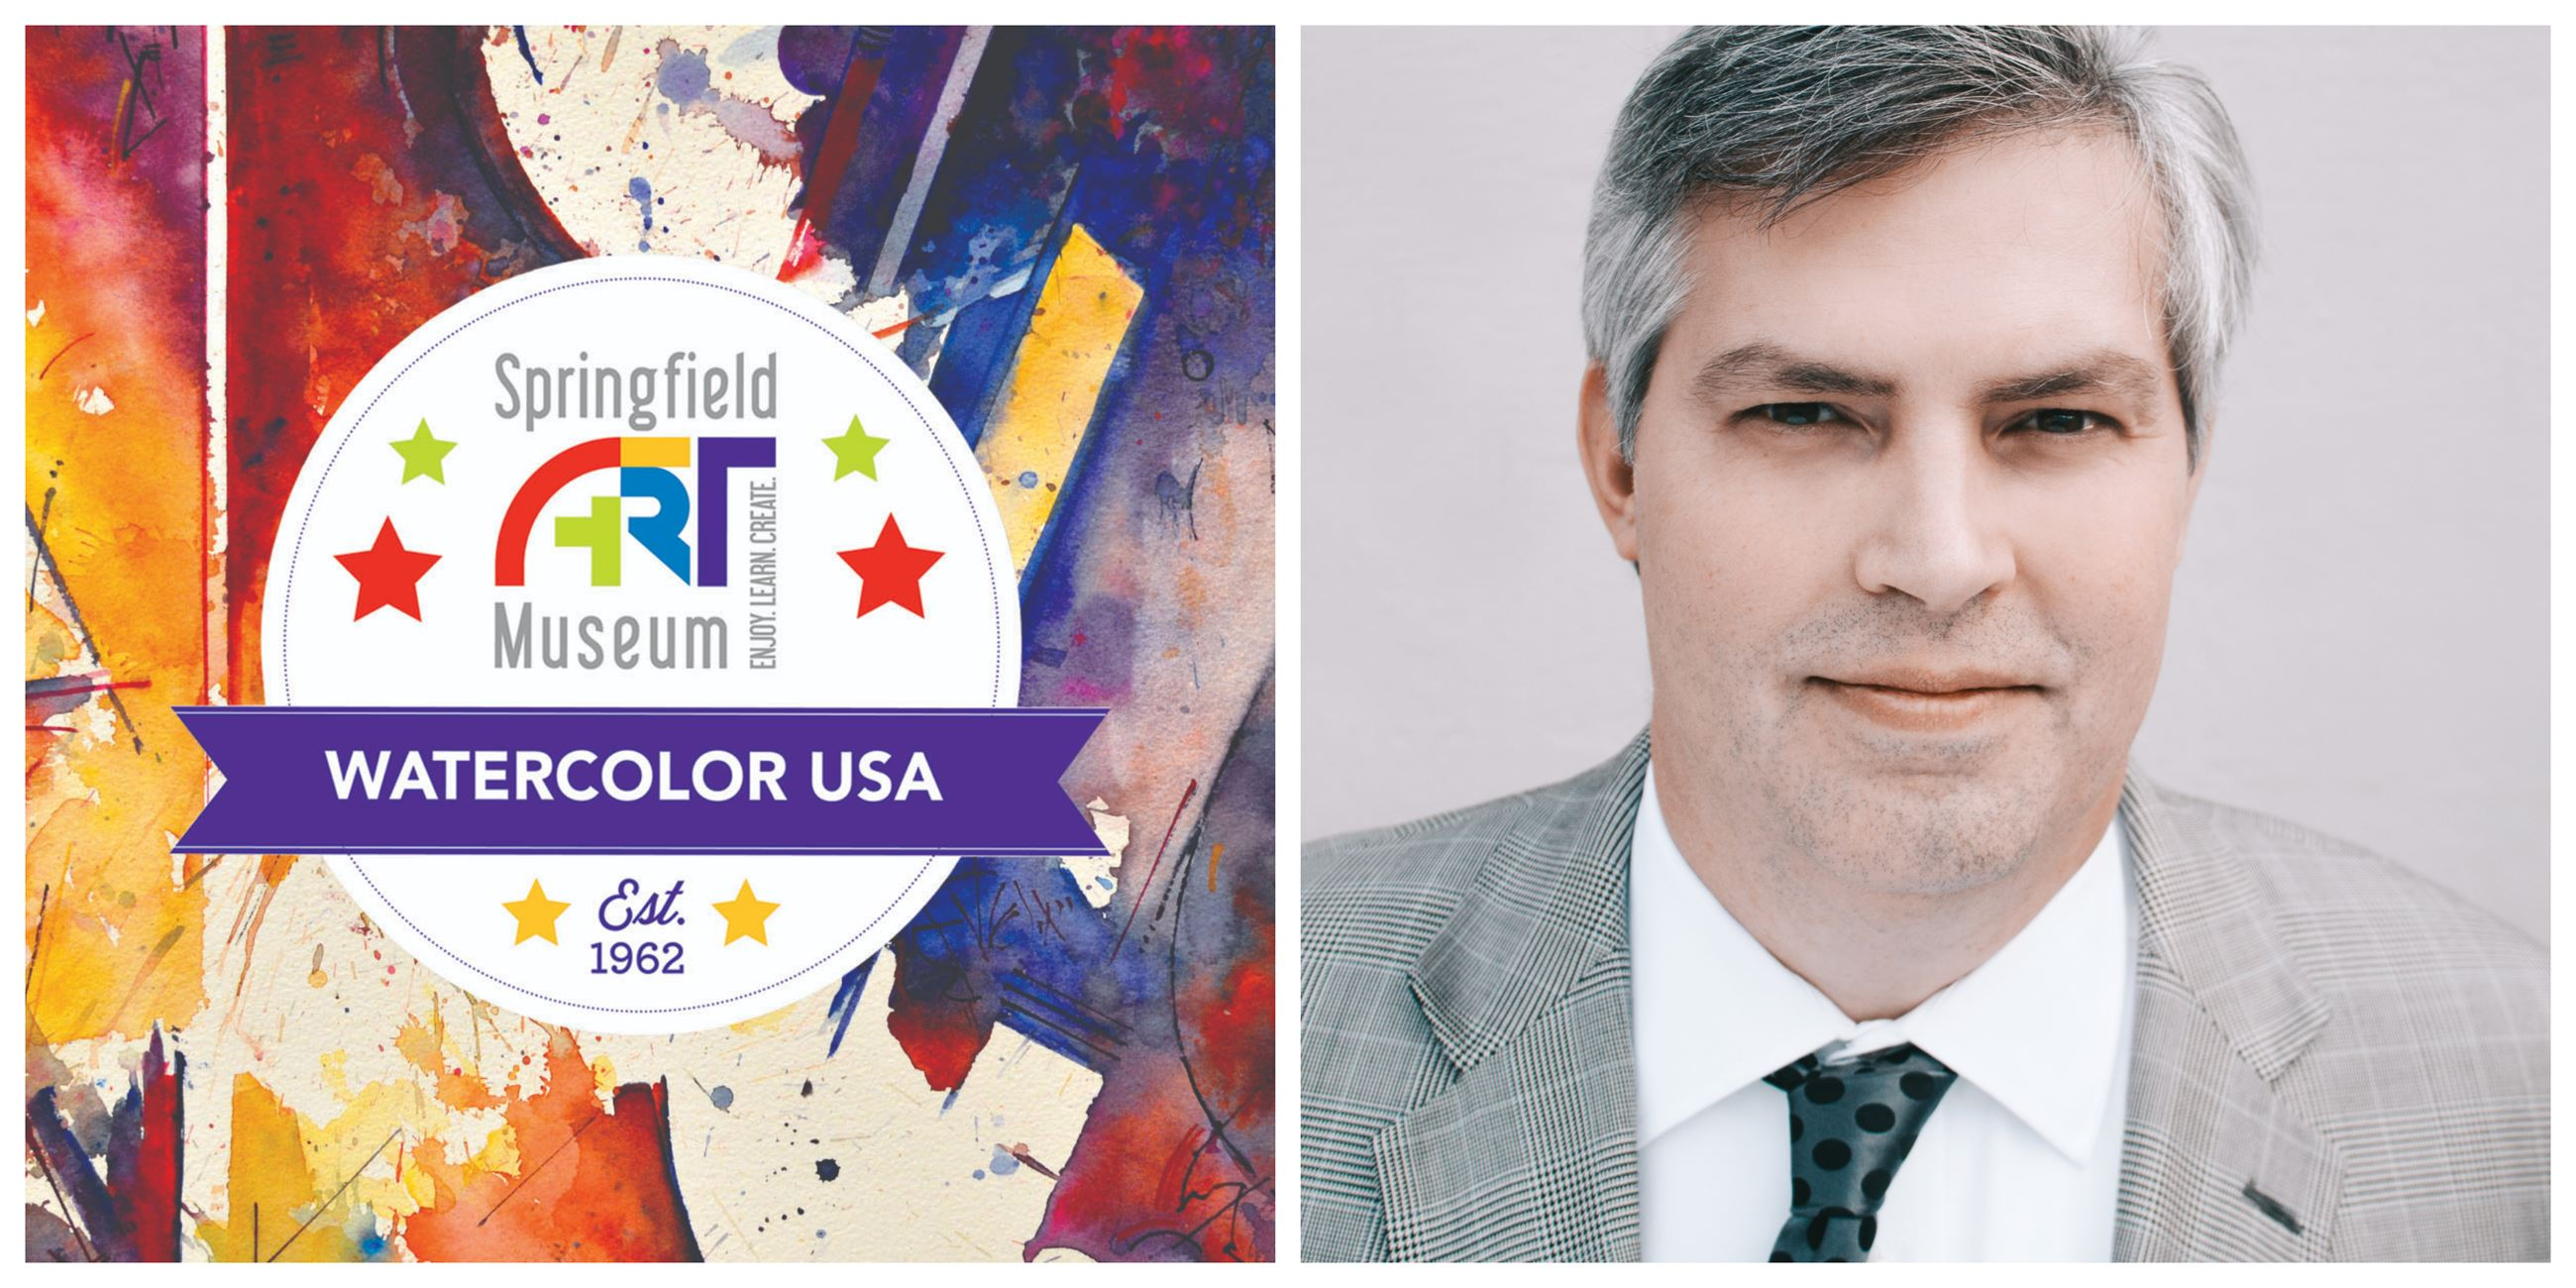 Watercolor USA logo with a headshot of Museum Director Nick Nelson